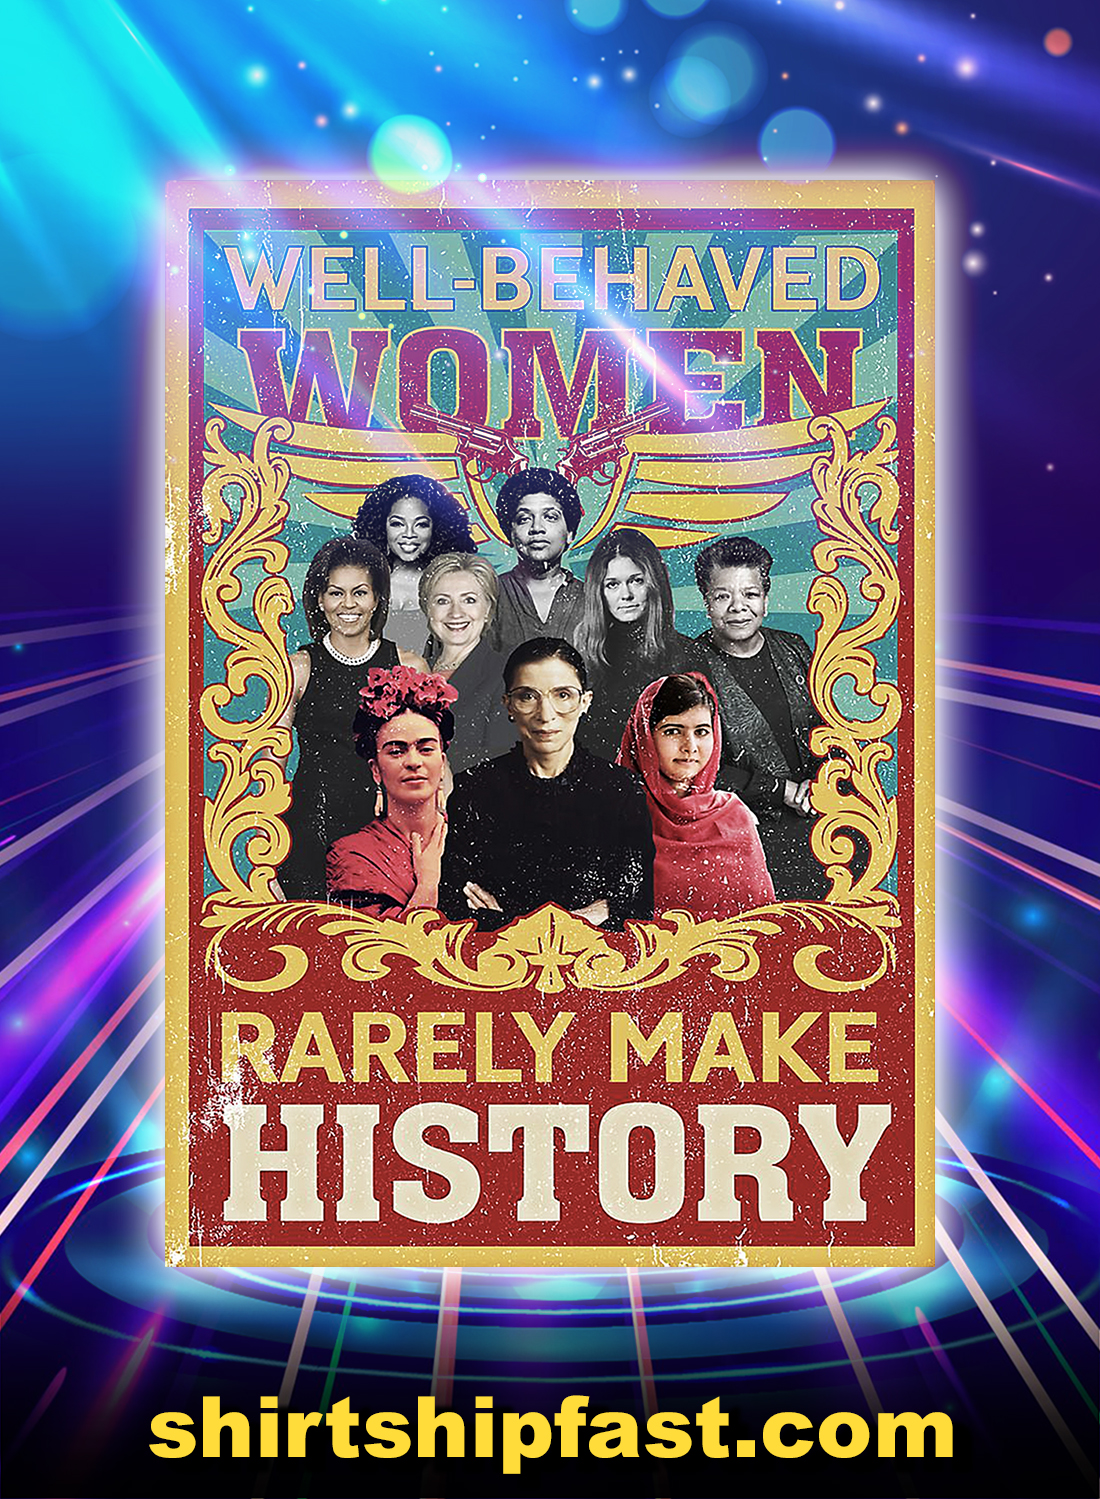 Well-behaved woman rarely make history poster - A4